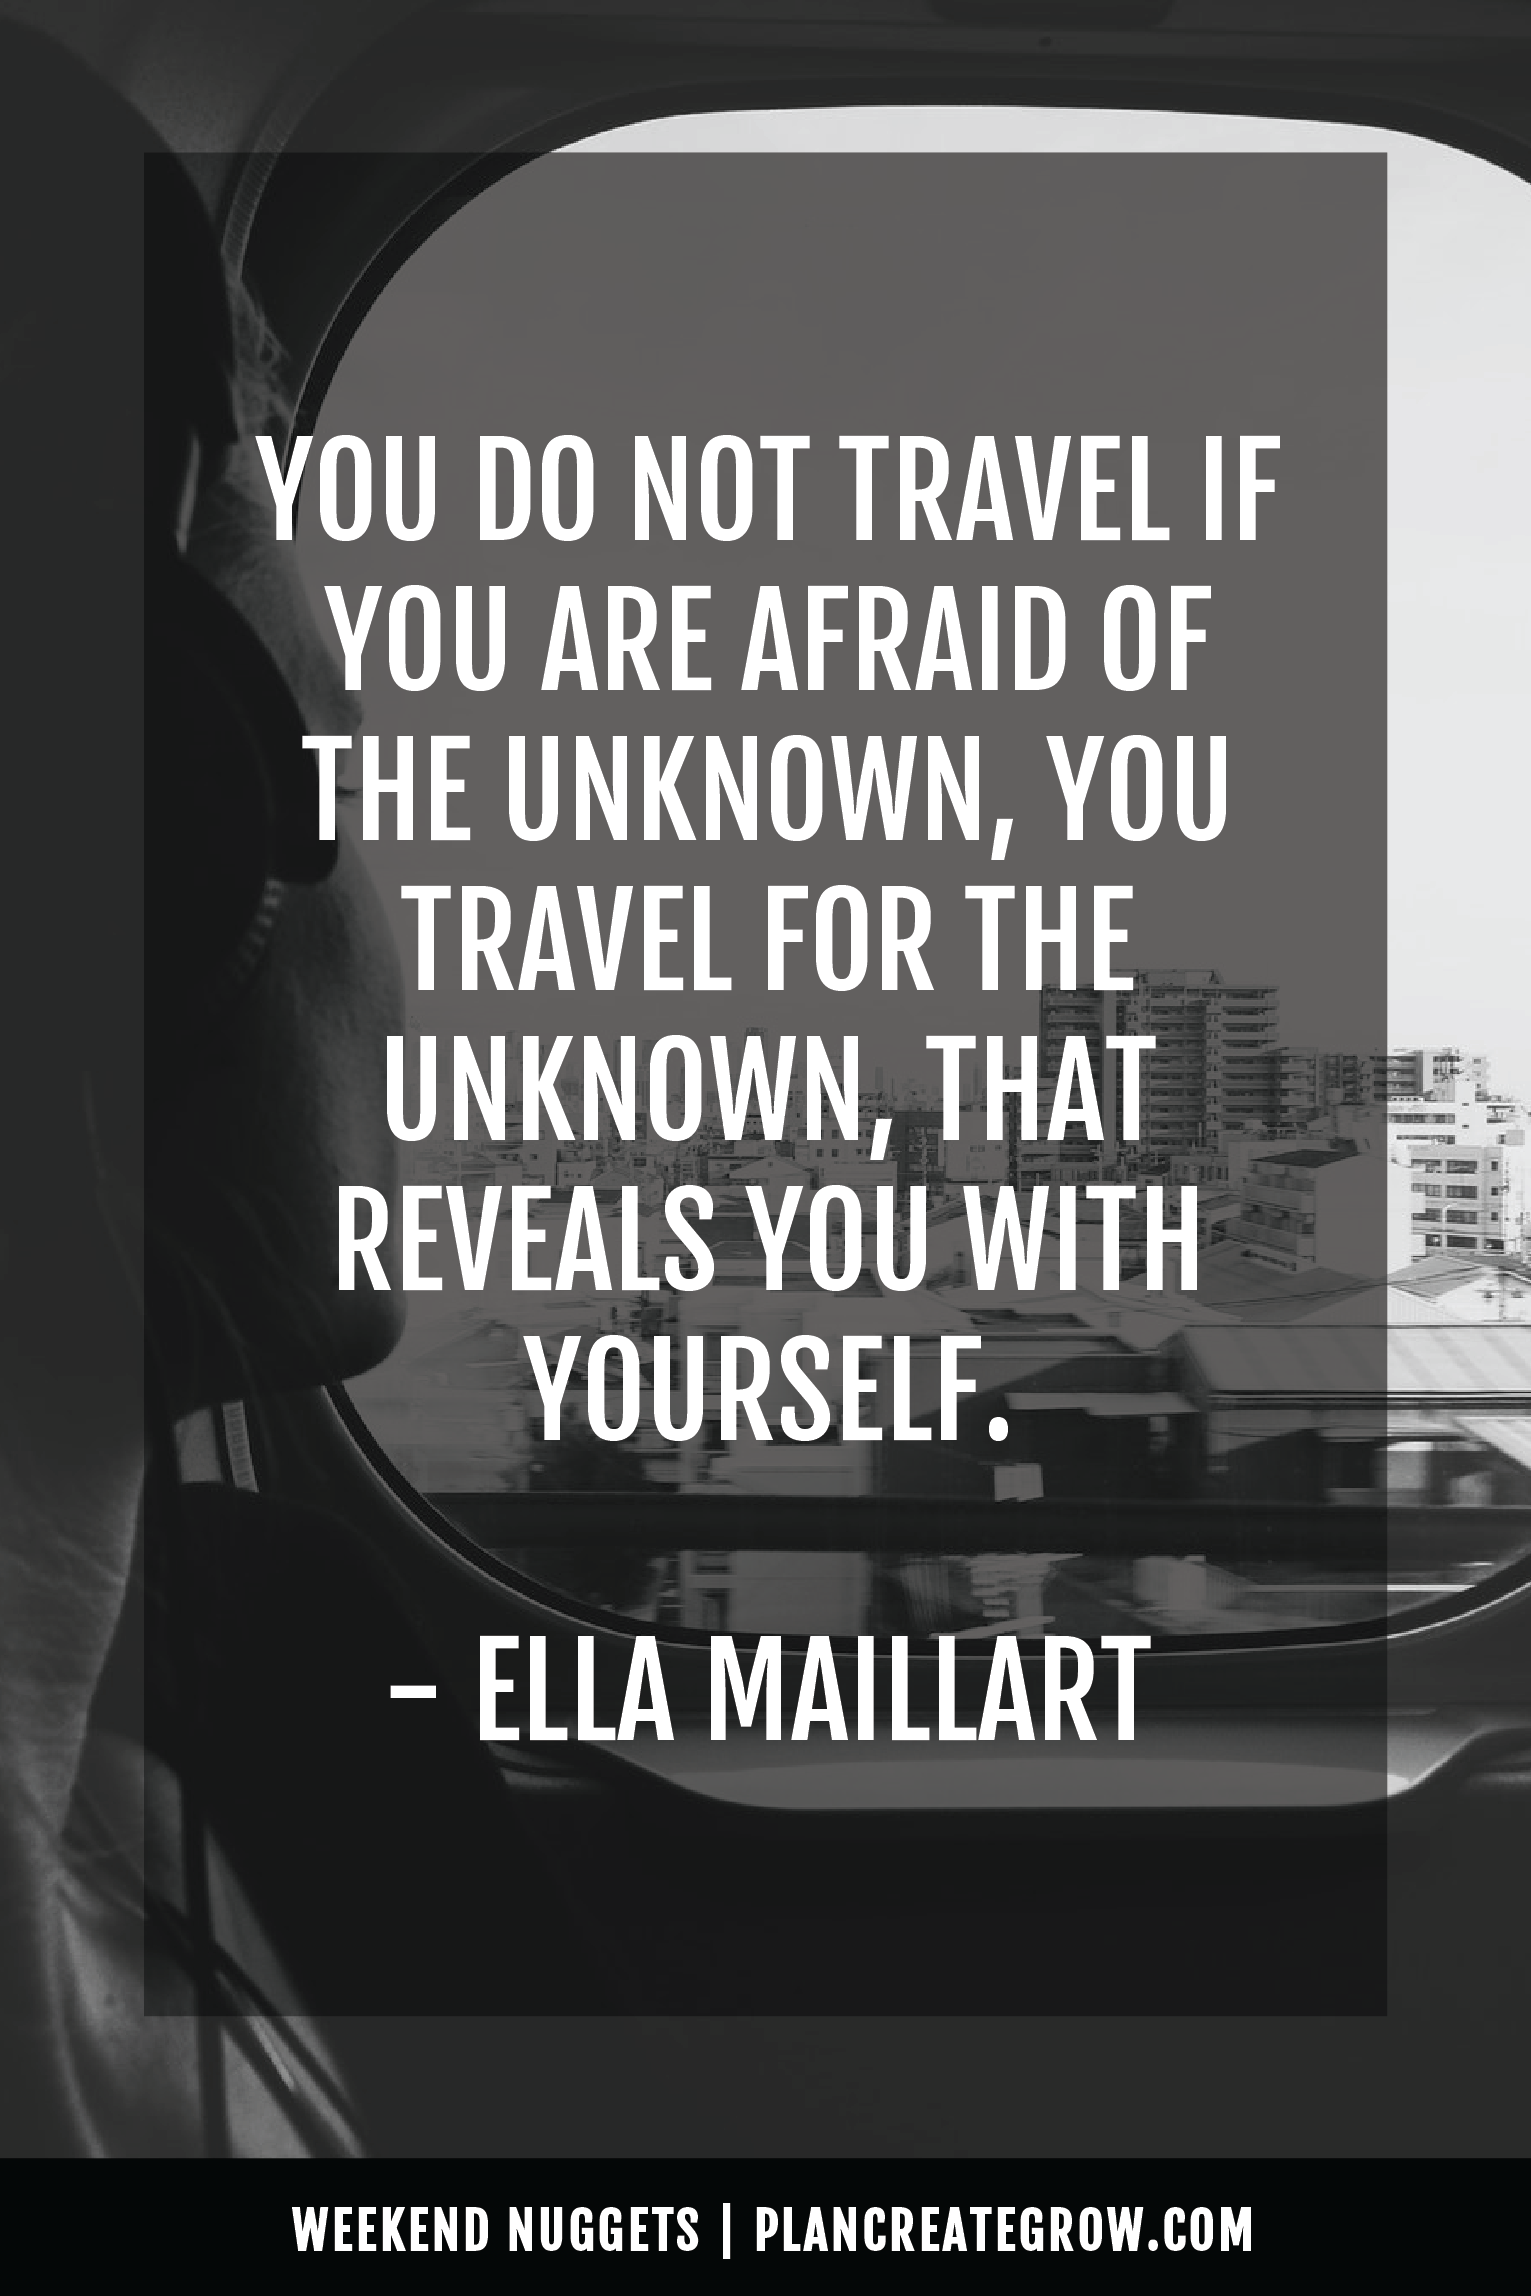 """""""You do not travel if you are afraid of the unknown, you travel for the unknown, that reveals you with yourself."""" - Ella Maillart  This image forms part of a series called Weekend Nuggets - a collection of quotes and ideas curated to delight and inspire - shared each weekend. For more, visit plancreategrow.com/weekend-nuggets."""